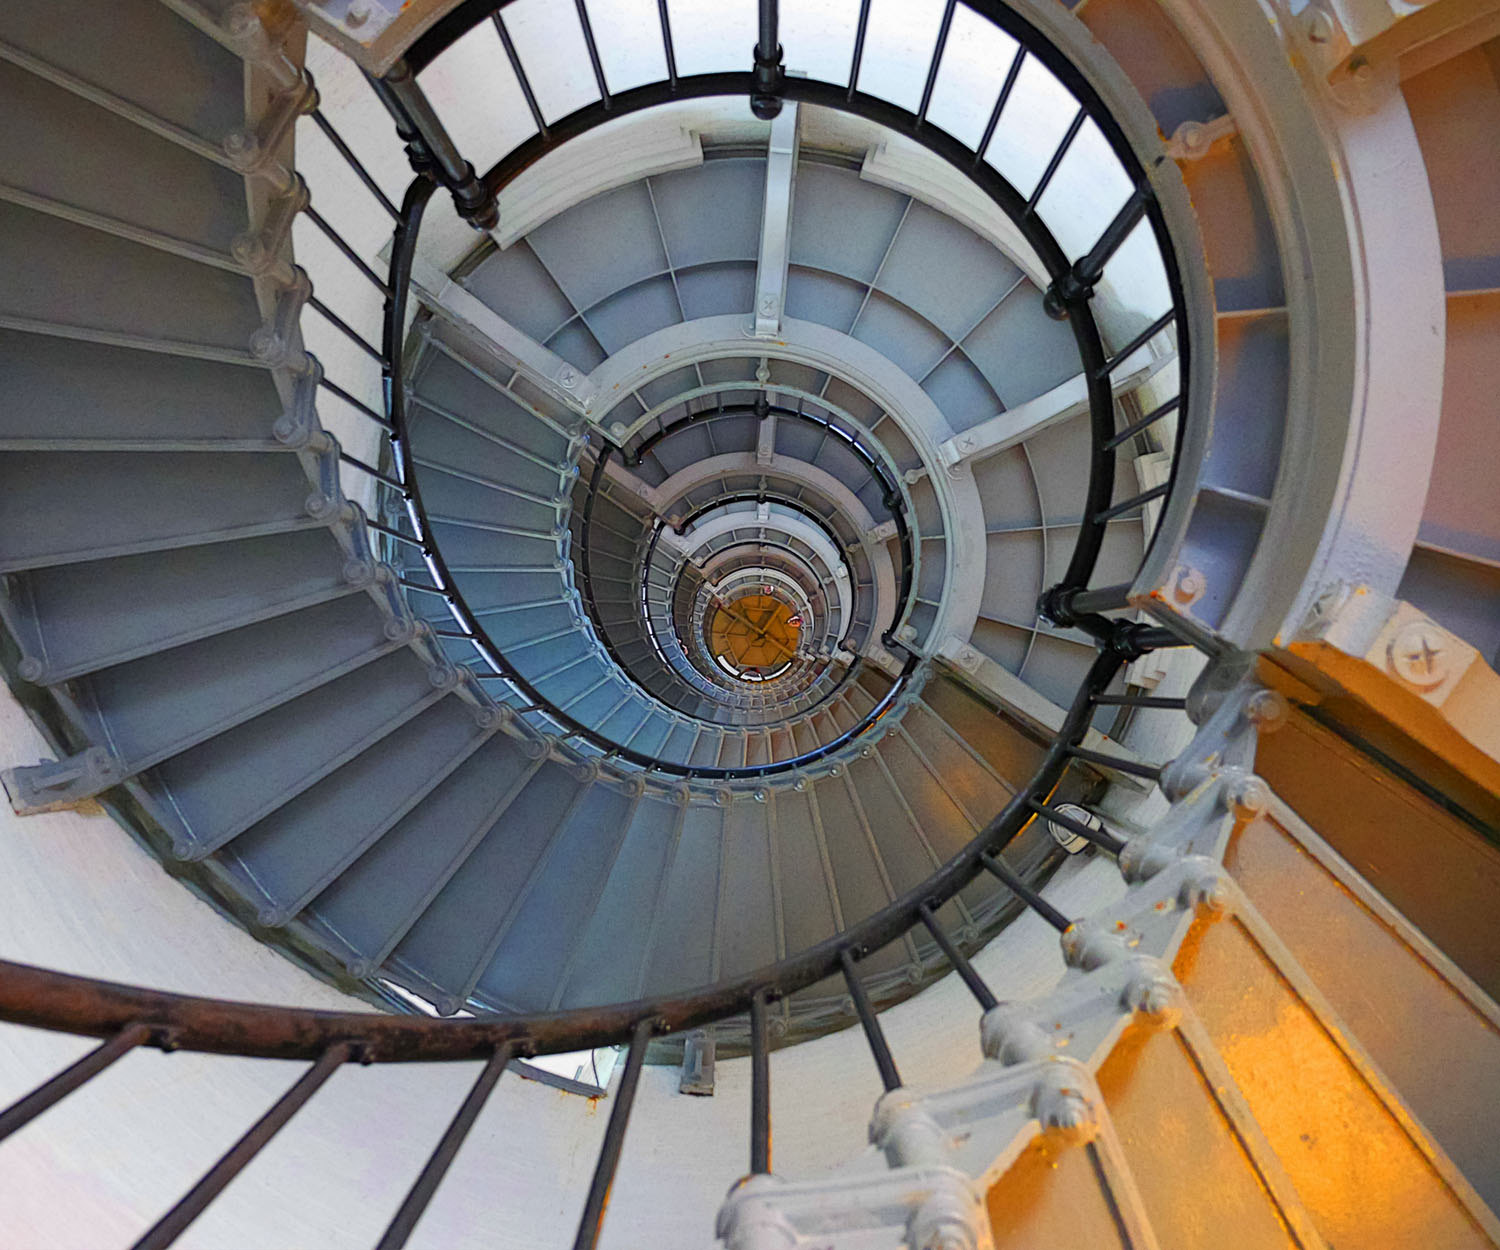 https://i0.wp.com/digital-photography-school.com/wp-content/uploads/2019/12/Metering-System-Spiral-Staircase.jpg?resize=1500%2C1250&ssl=1